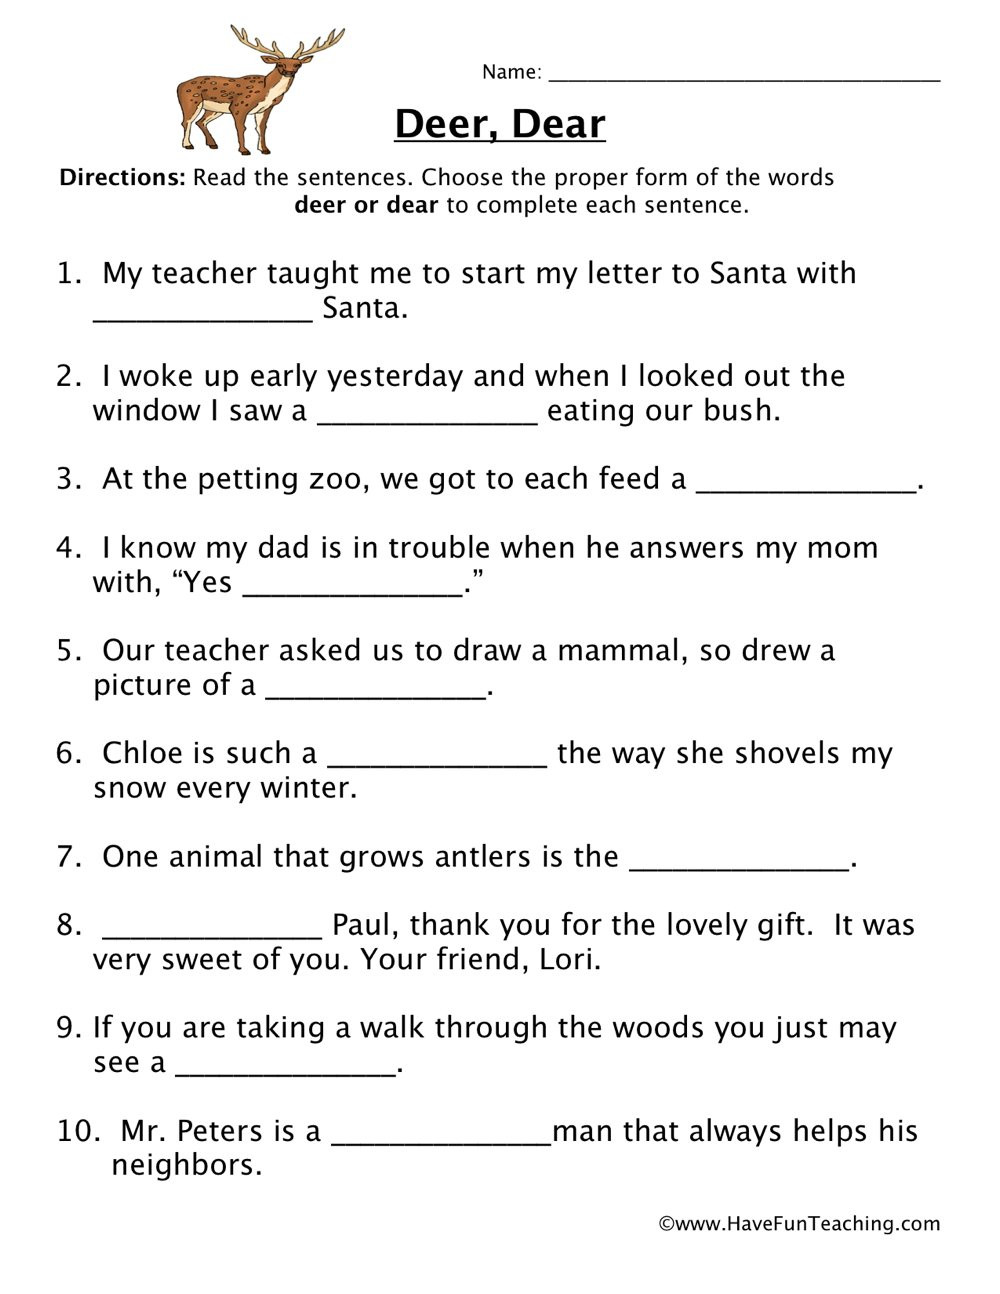 Homophone Worksheets 5th Grade Deer Dear Homophones Worksheet